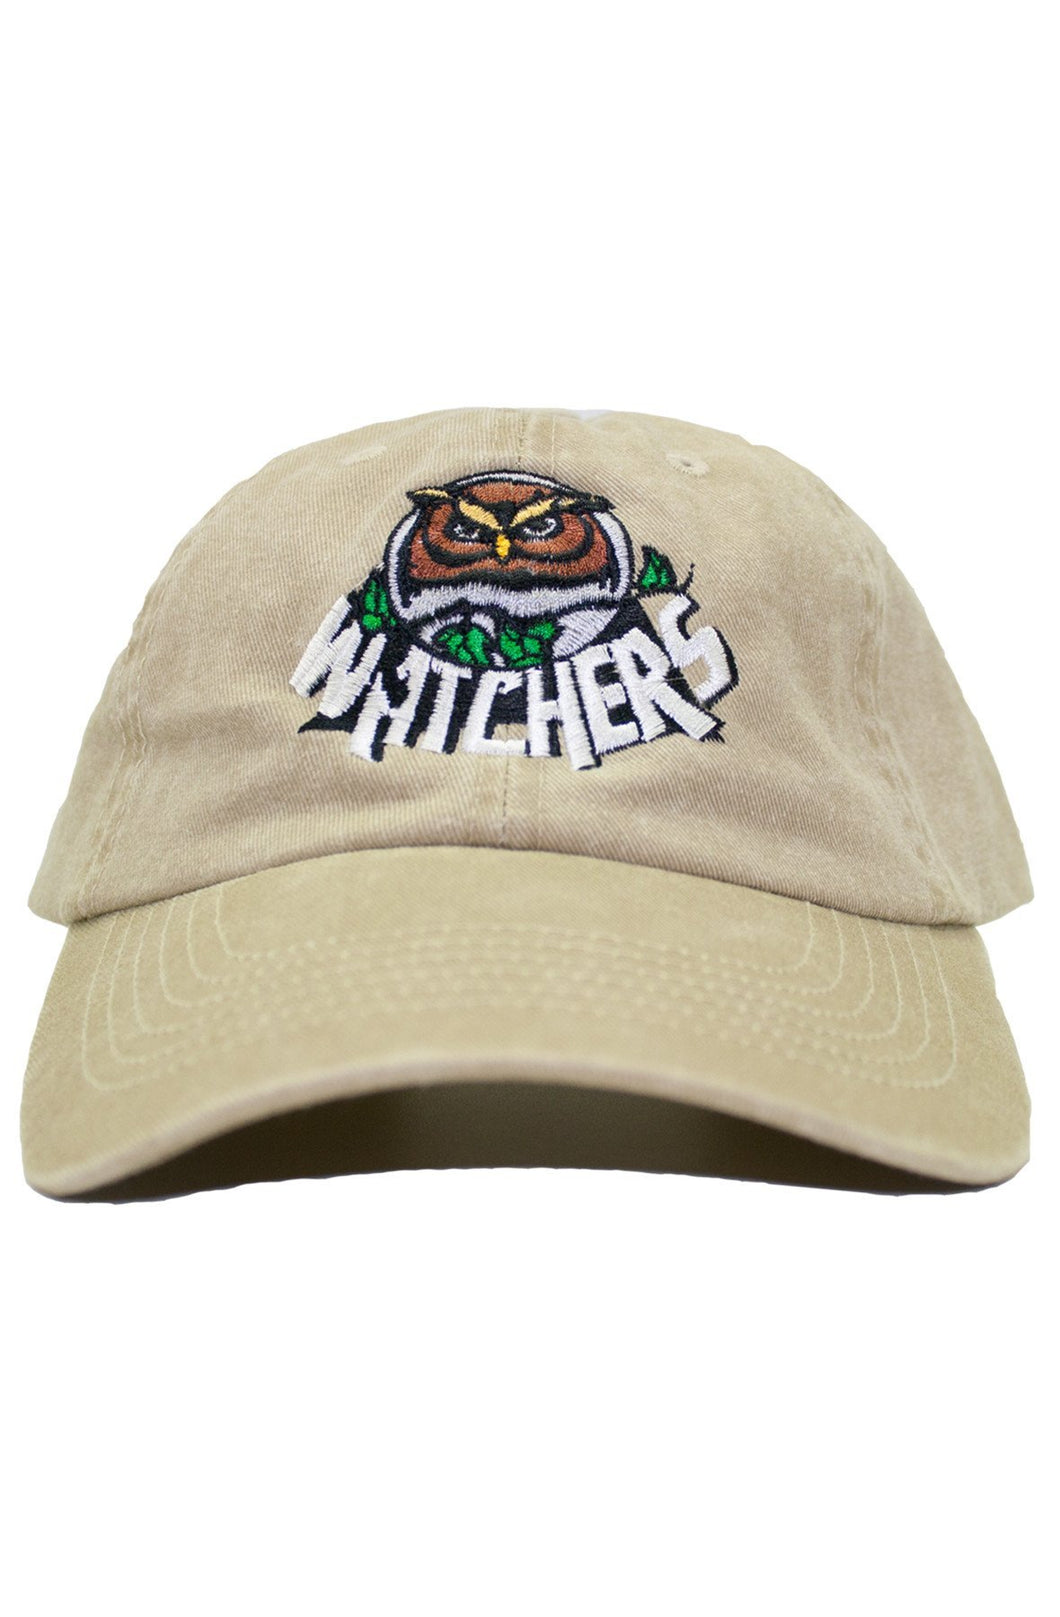 WATCHERS KHAKI DAD HAT